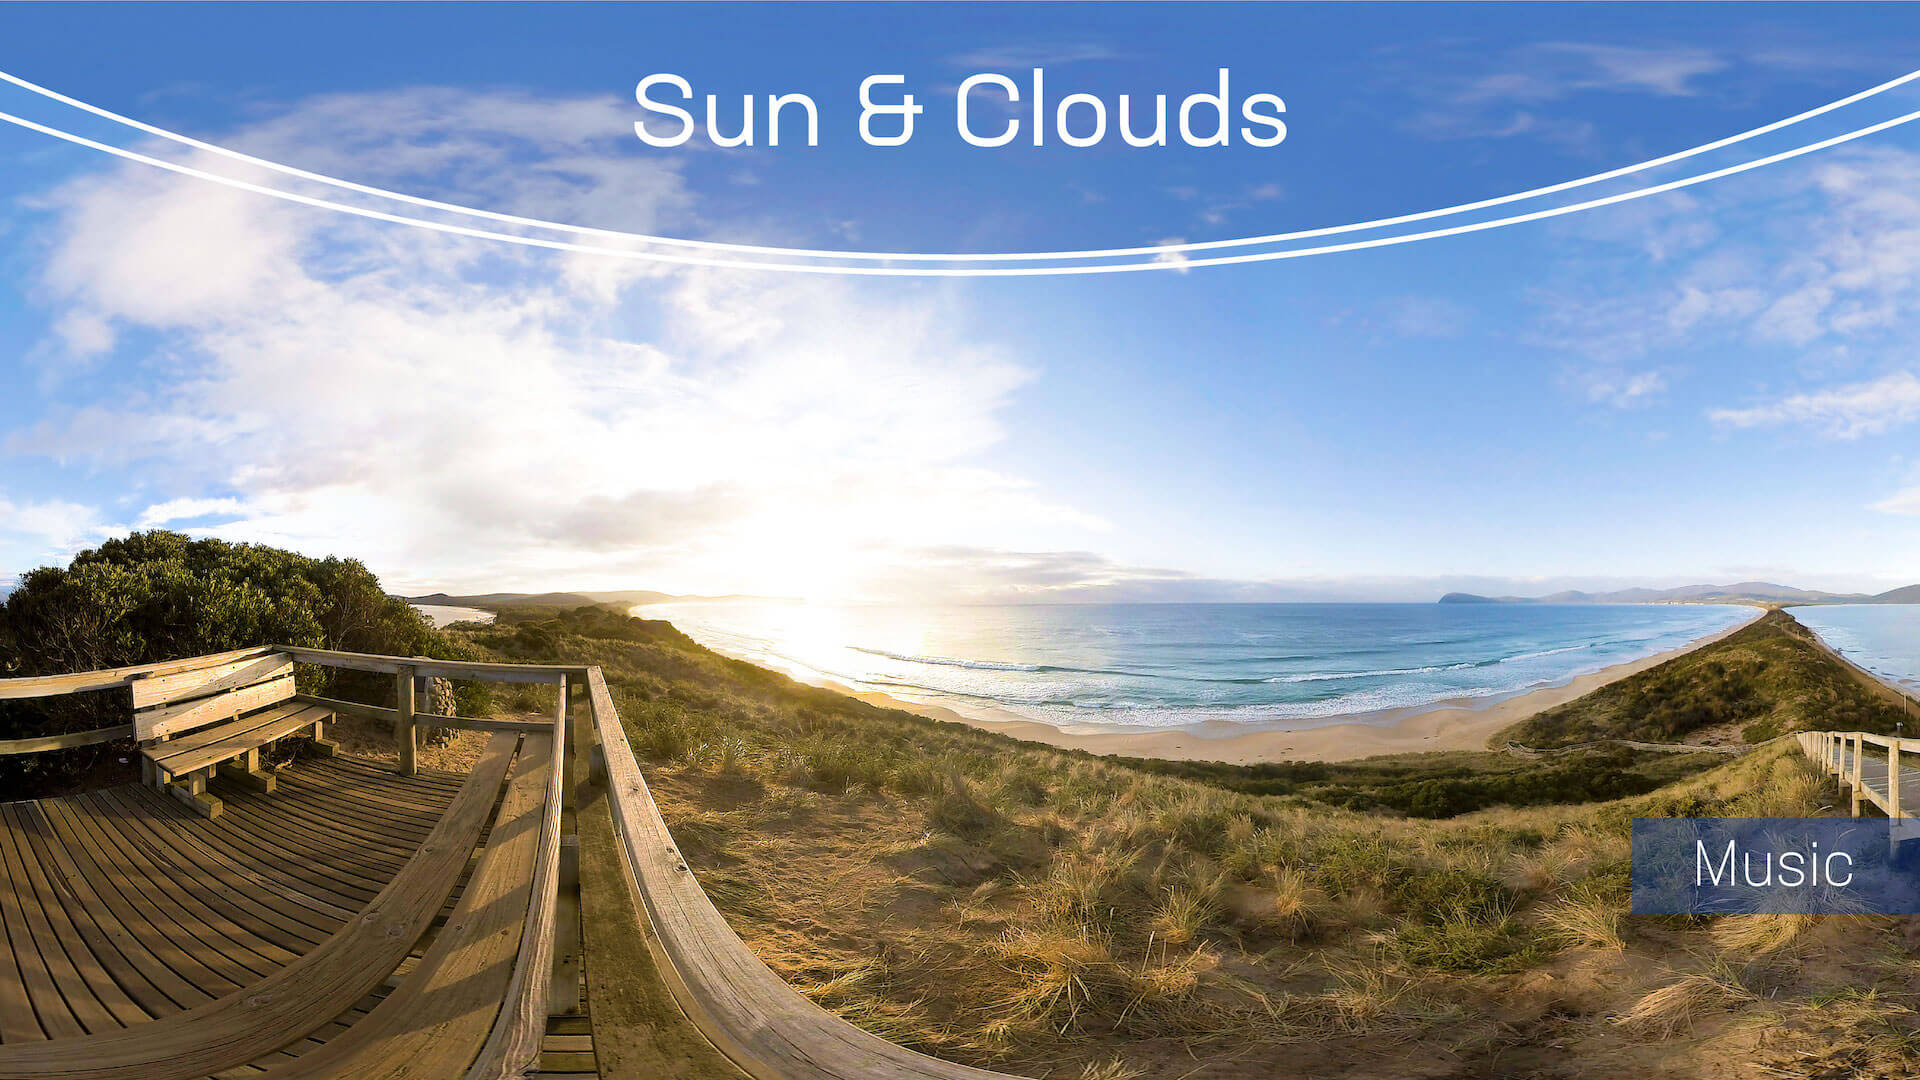 Sun & Clouds 360° Timelapse - An Immersive 360/VR Experience